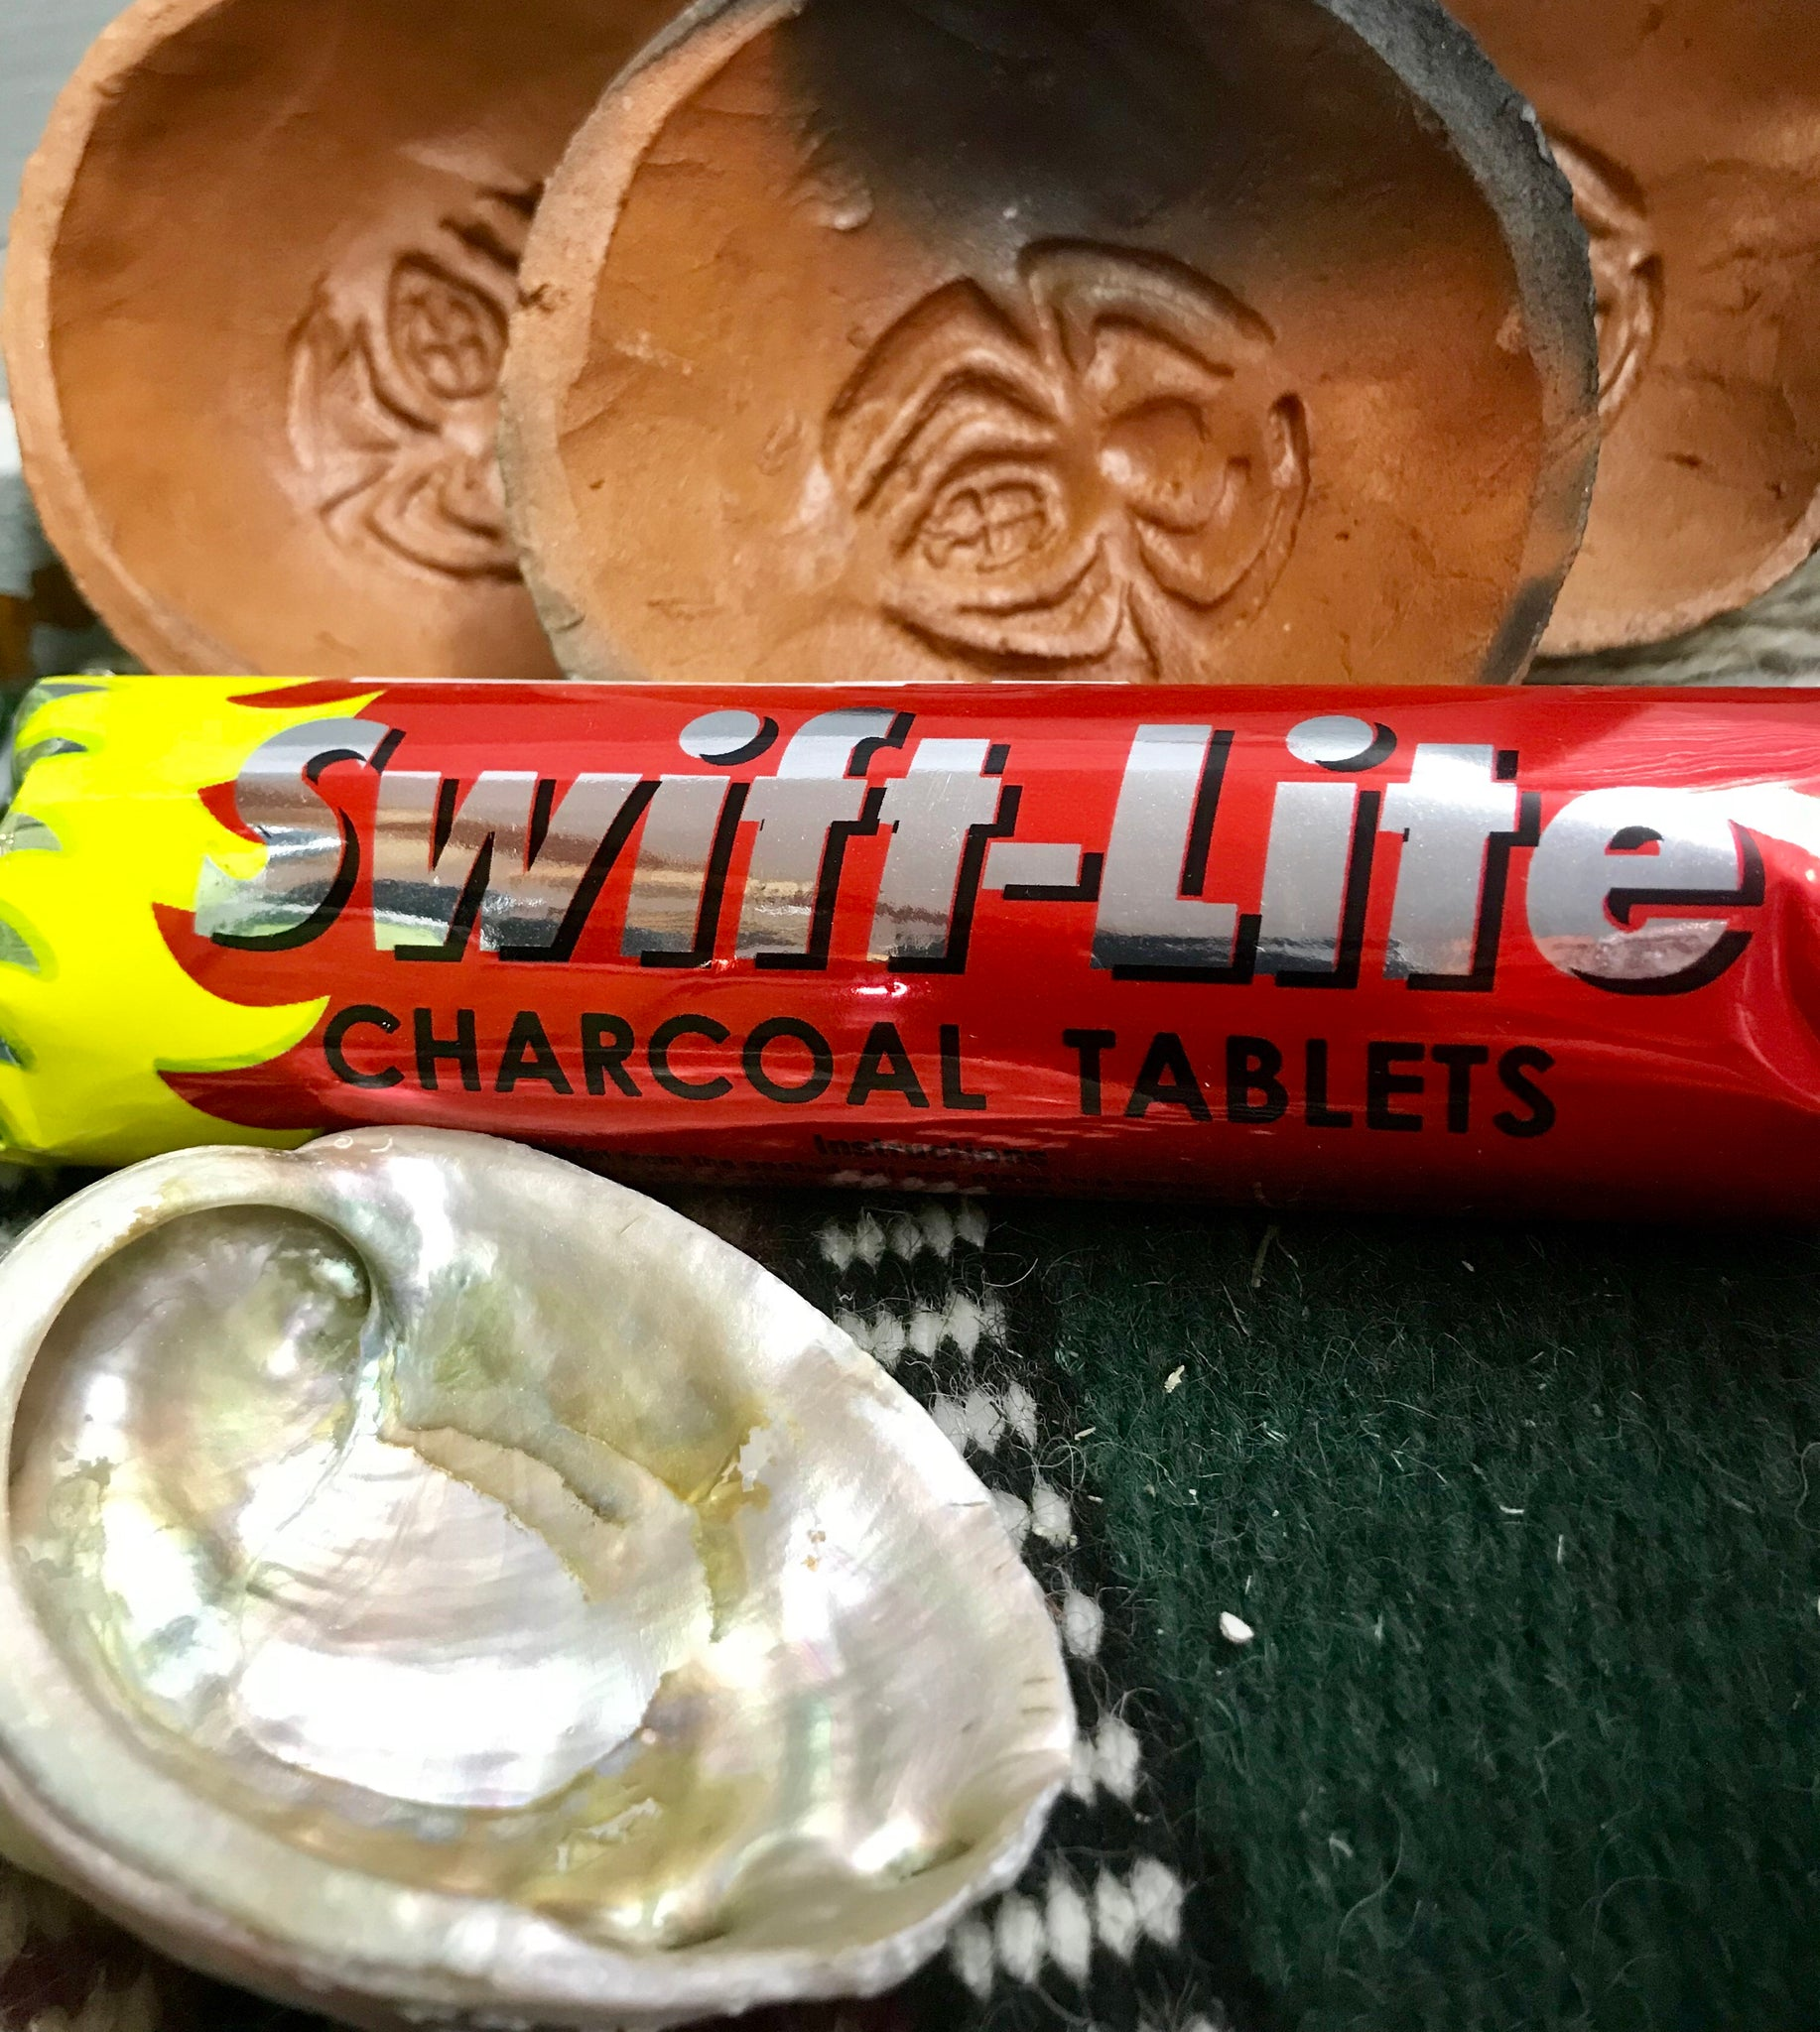 Swift-Light Charcoal Tablets